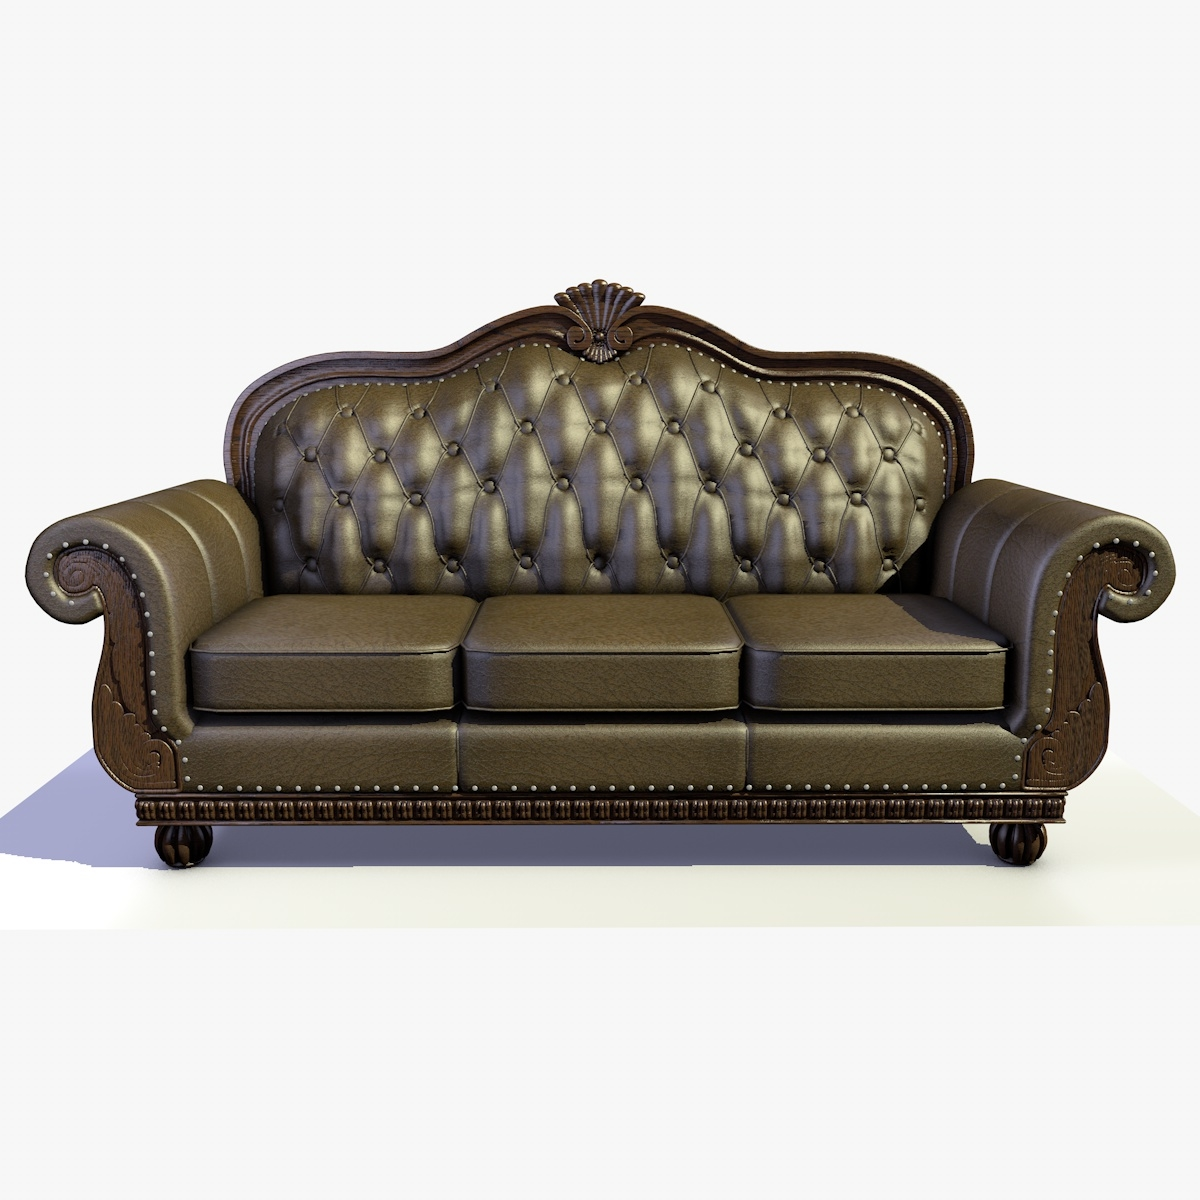 Traditional Solid Wood, Leather And Fabric Chesterfield Sofa 2